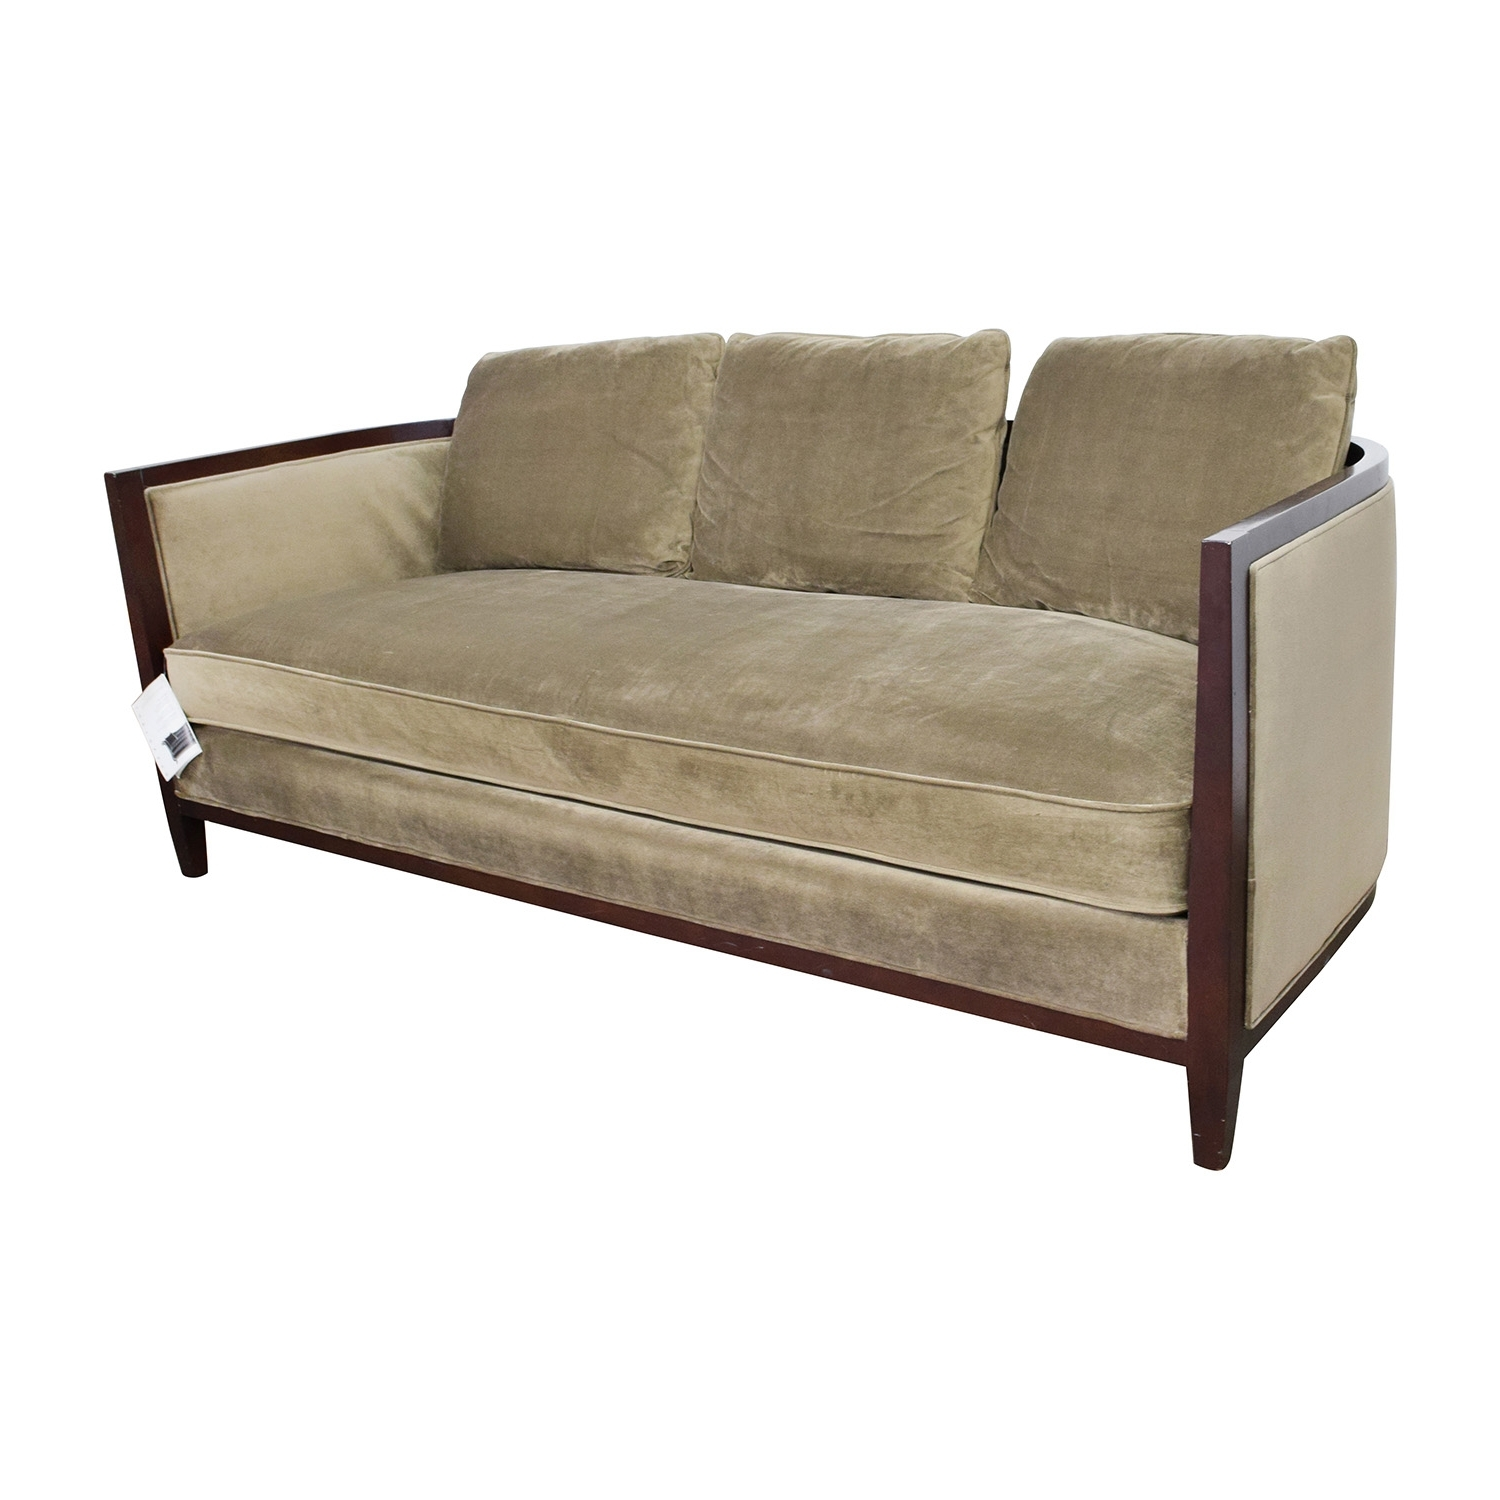 [%85% Off – Bernhardt Bernhardt Tan Single Cushion Sofa / Sofas Inside Well Liked One Cushion Sofas|One Cushion Sofas Pertaining To Popular 85% Off – Bernhardt Bernhardt Tan Single Cushion Sofa / Sofas|Recent One Cushion Sofas In 85% Off – Bernhardt Bernhardt Tan Single Cushion Sofa / Sofas|Famous 85% Off – Bernhardt Bernhardt Tan Single Cushion Sofa / Sofas In One Cushion Sofas%] (View 15 of 15)